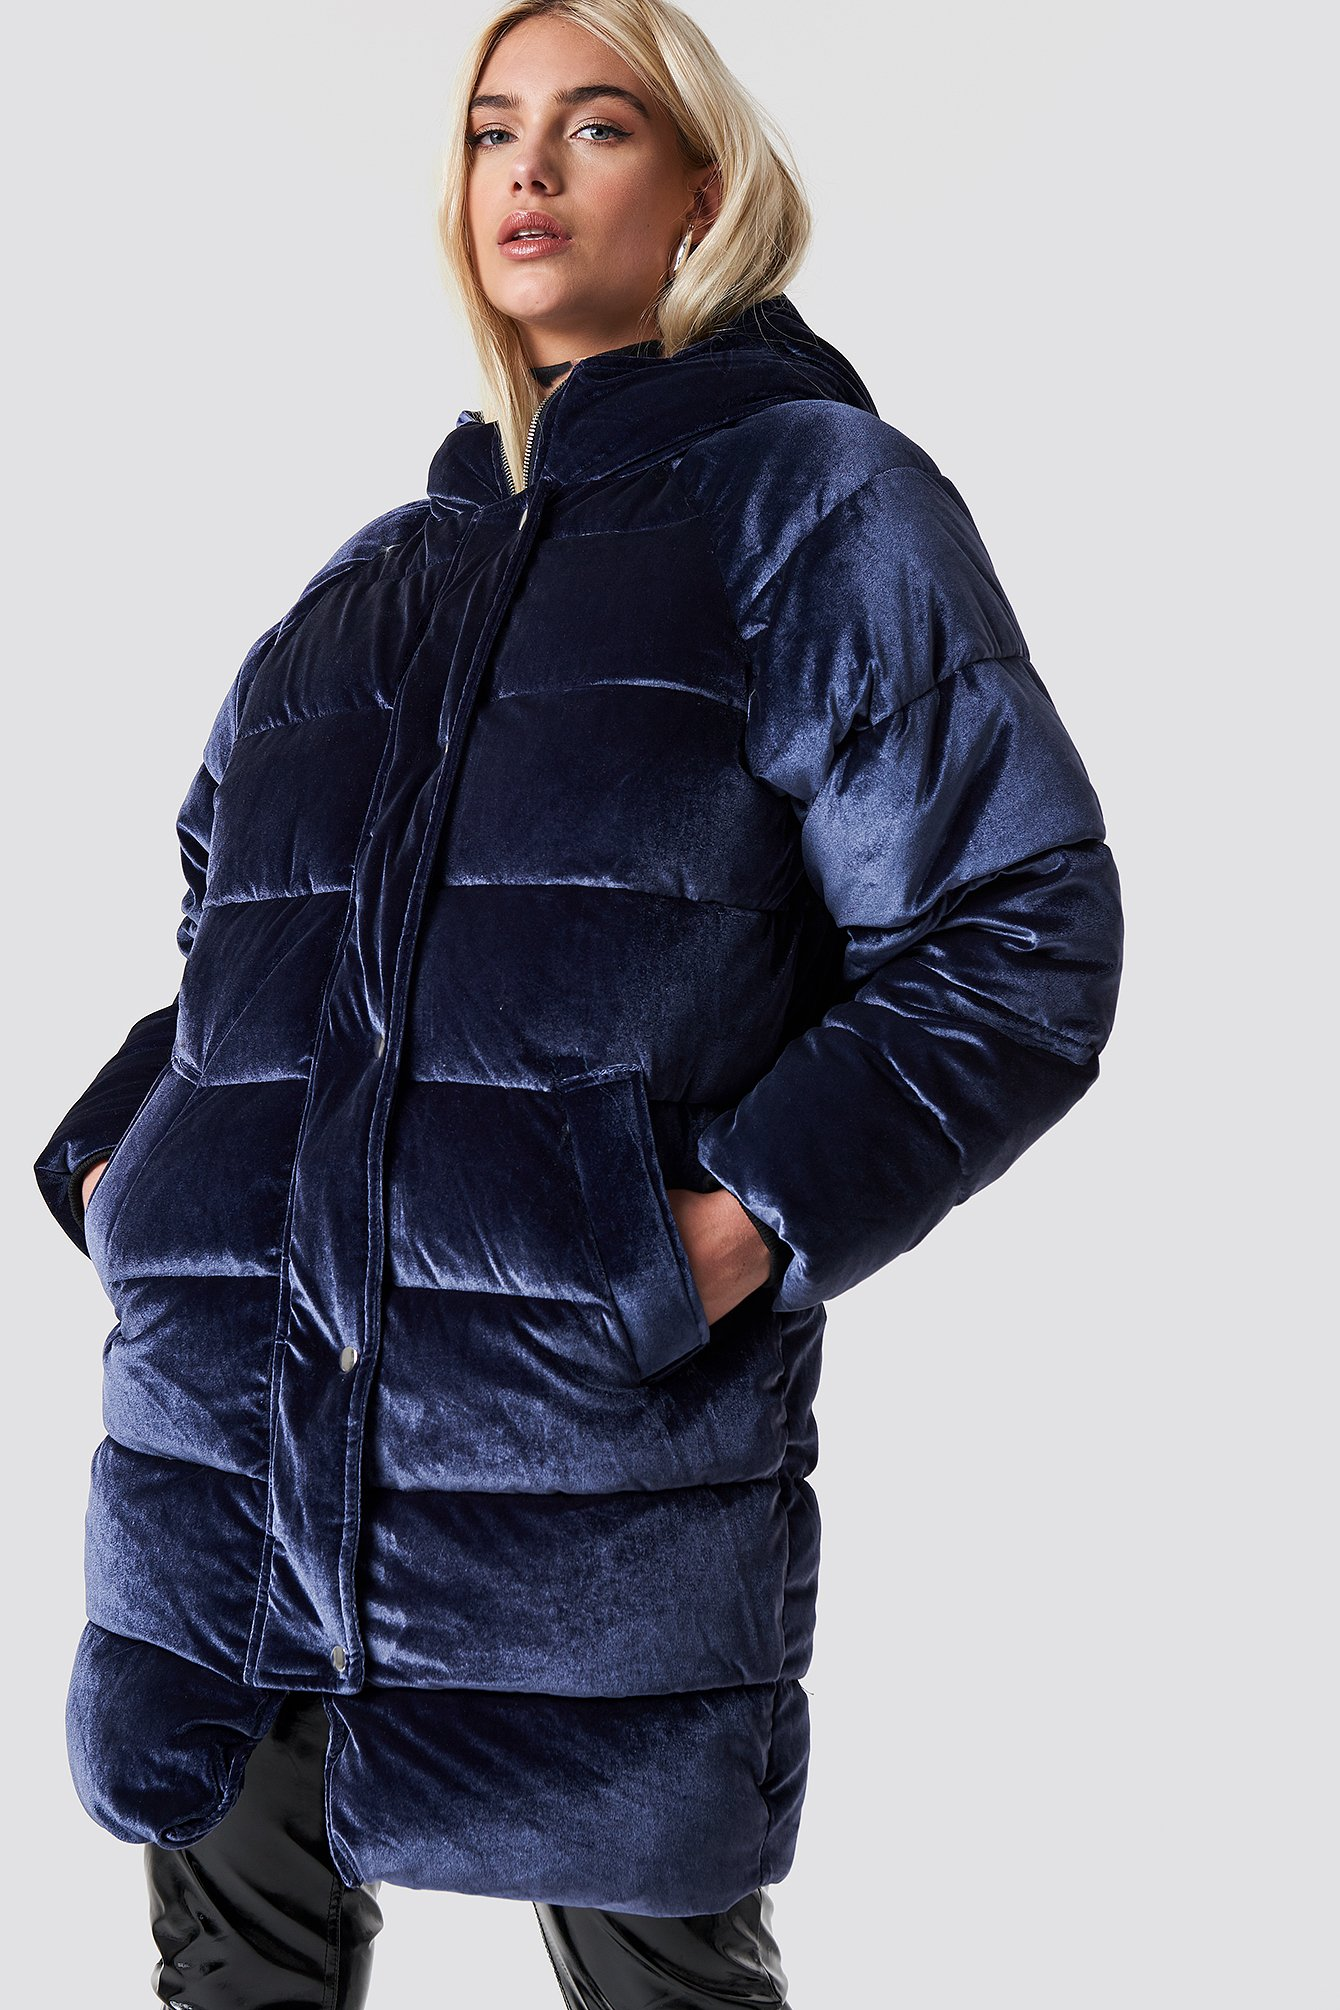 na-kd -  Velvet Long Puffer - Blue,Navy